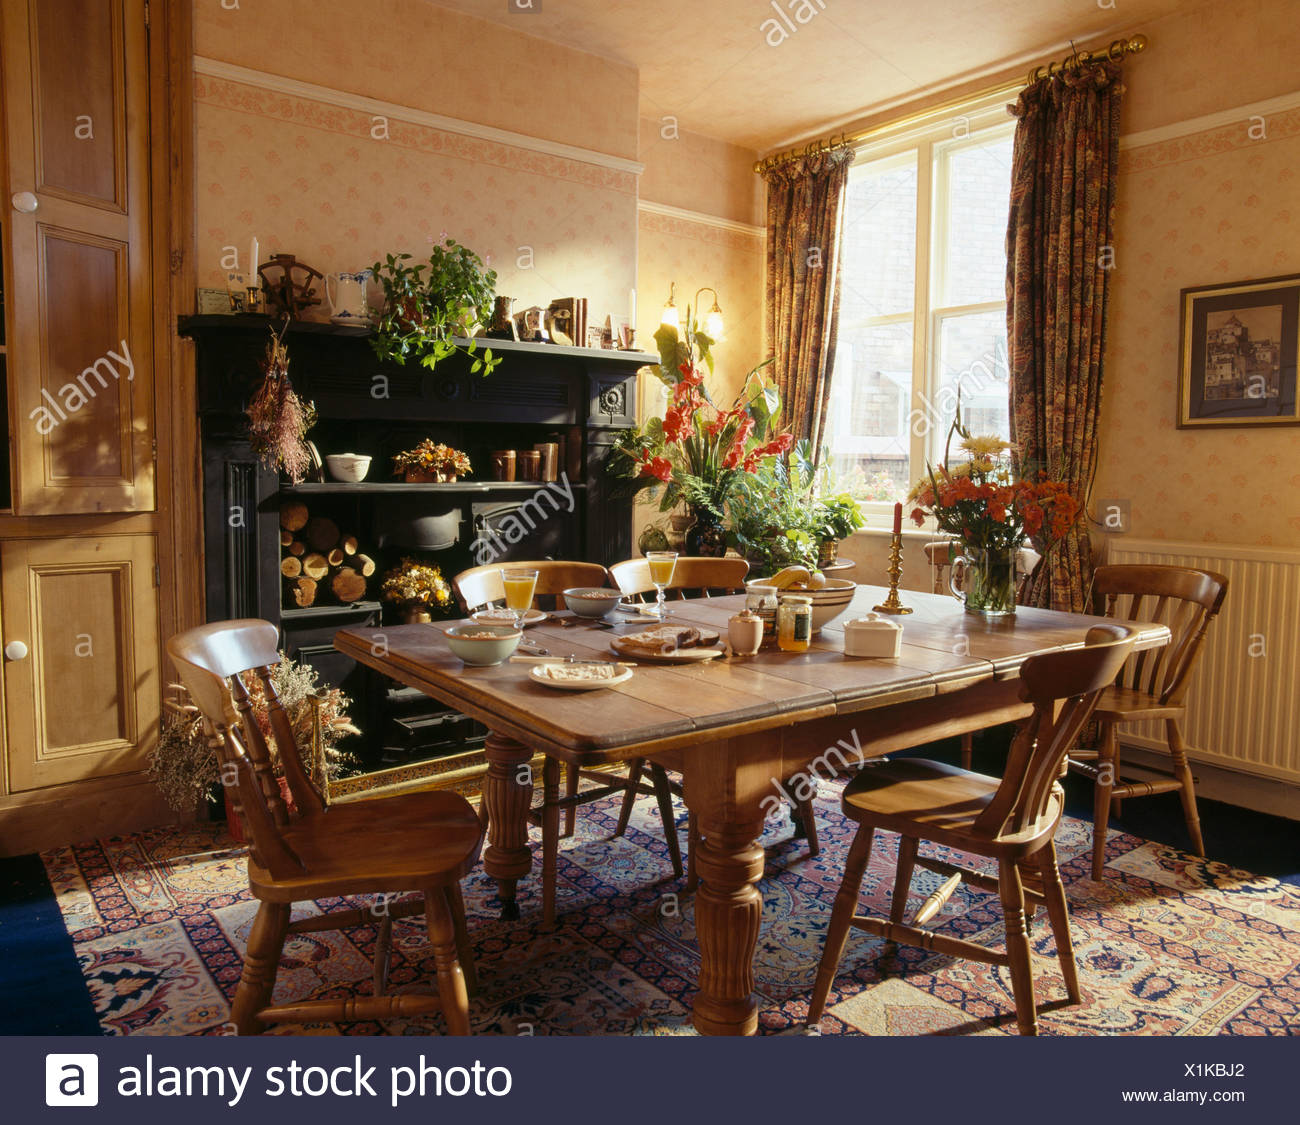 Pine chairs and table in traditional dining room with neutral patterned wallpaper